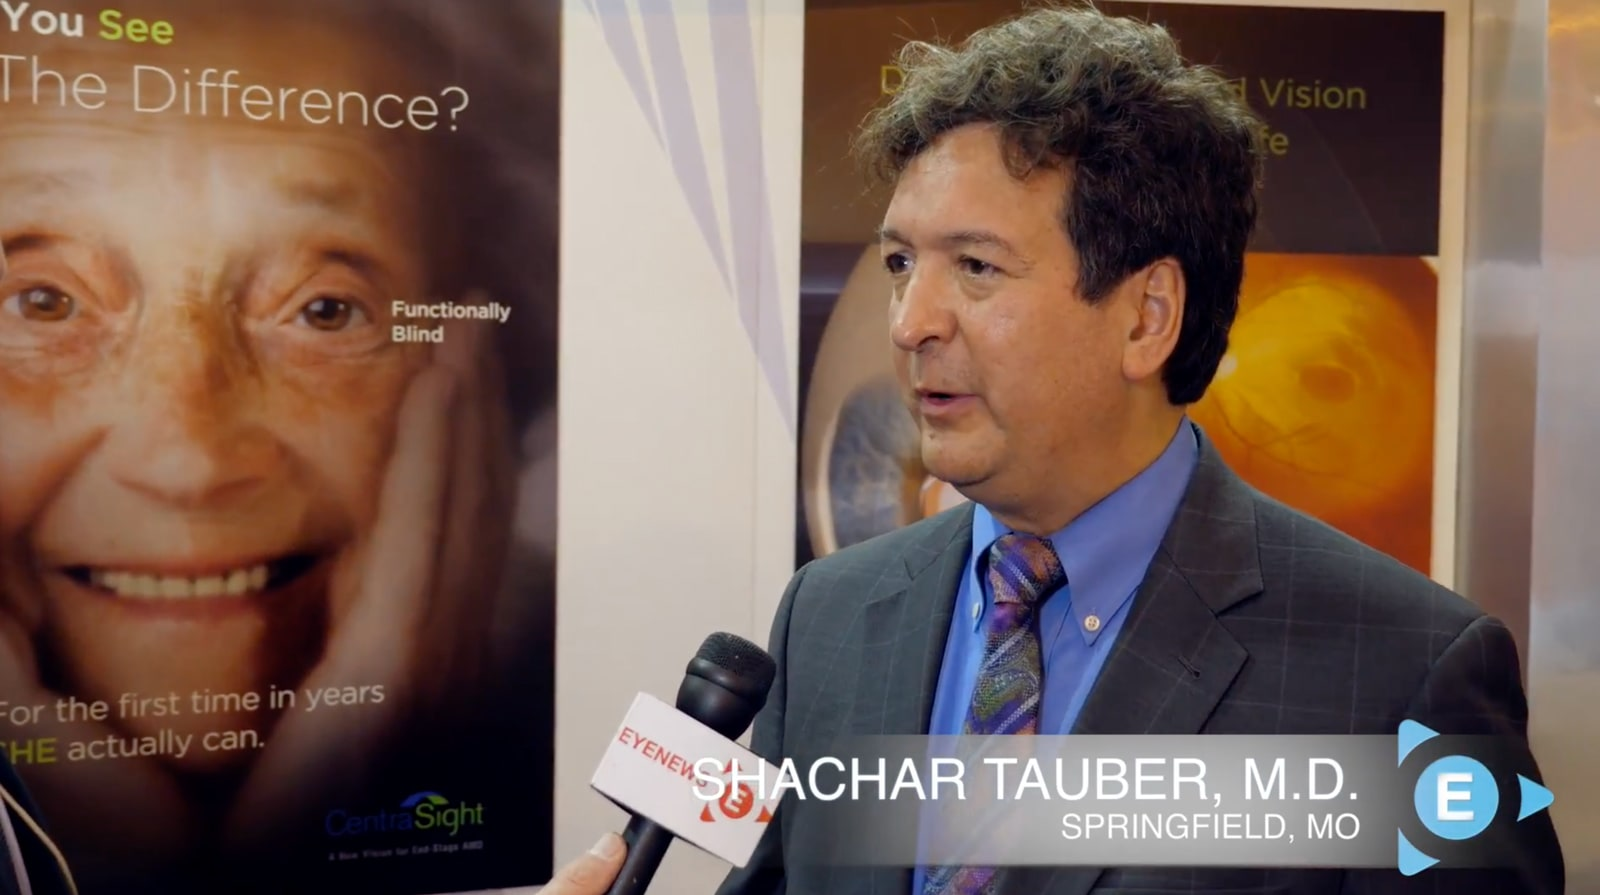 Dr. Shachar Tauber, M.D., on Clinical Success with the Telescope Implant